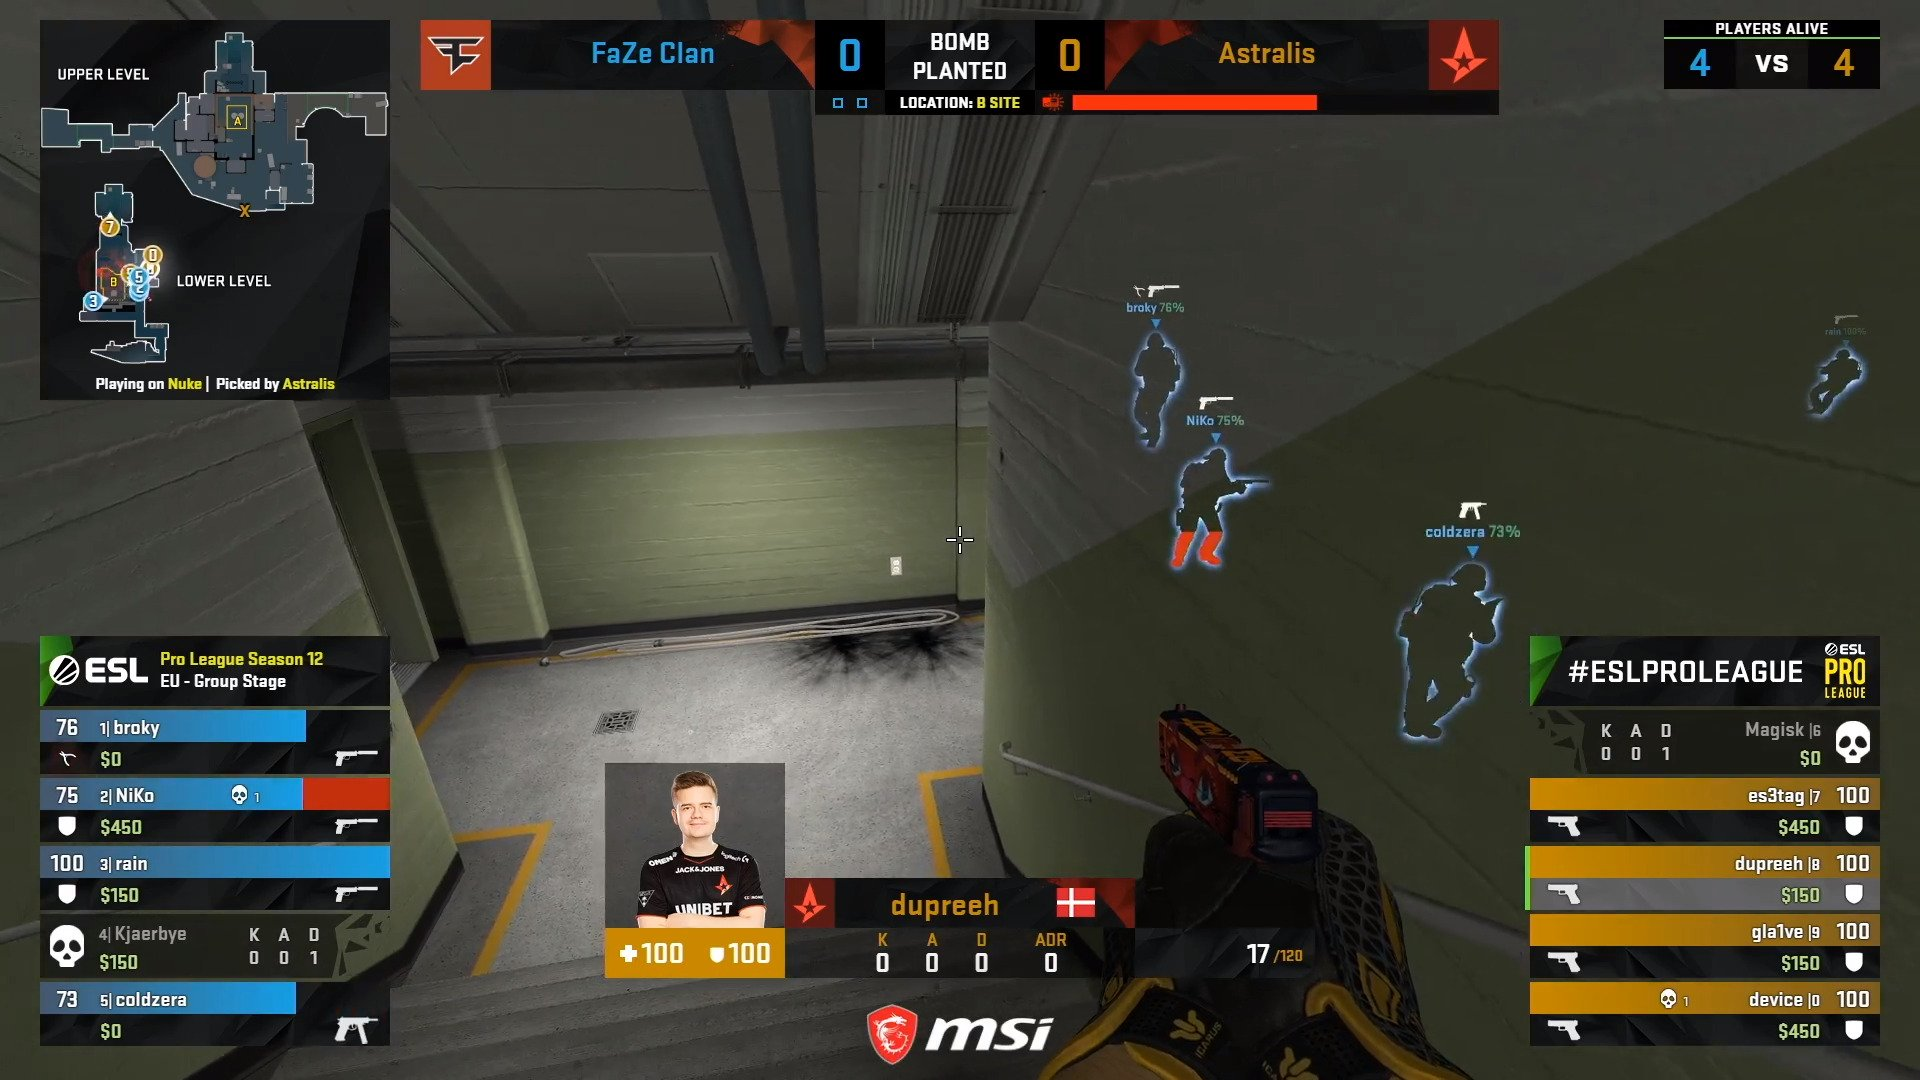 CS:GO – FaZe Versus Astralis For ESL Pro League Shows A Bit More Competence